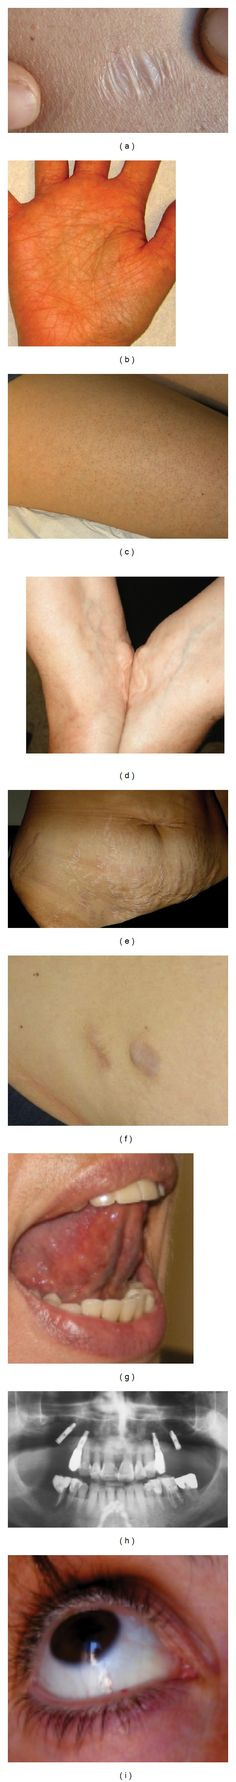 SEDh - Skin and mucosal features of EDS hypermobility type. --- Atrophic, nonpapyraceous scar (a). Accentuated crease reticulum of the palm (b). Keratosis pilaris (c). Piezogenic papules at wrists after compression (d). Extensive abdominal striae atrophicae (e). Postsurgical scar with anetoderma-like herniation of the subcutaneous fat (f). Apparent absence of the lingual frenulum (g). Radiographic orthopanoramic showing extensive tooth loss (h). Blue sclerae (i).